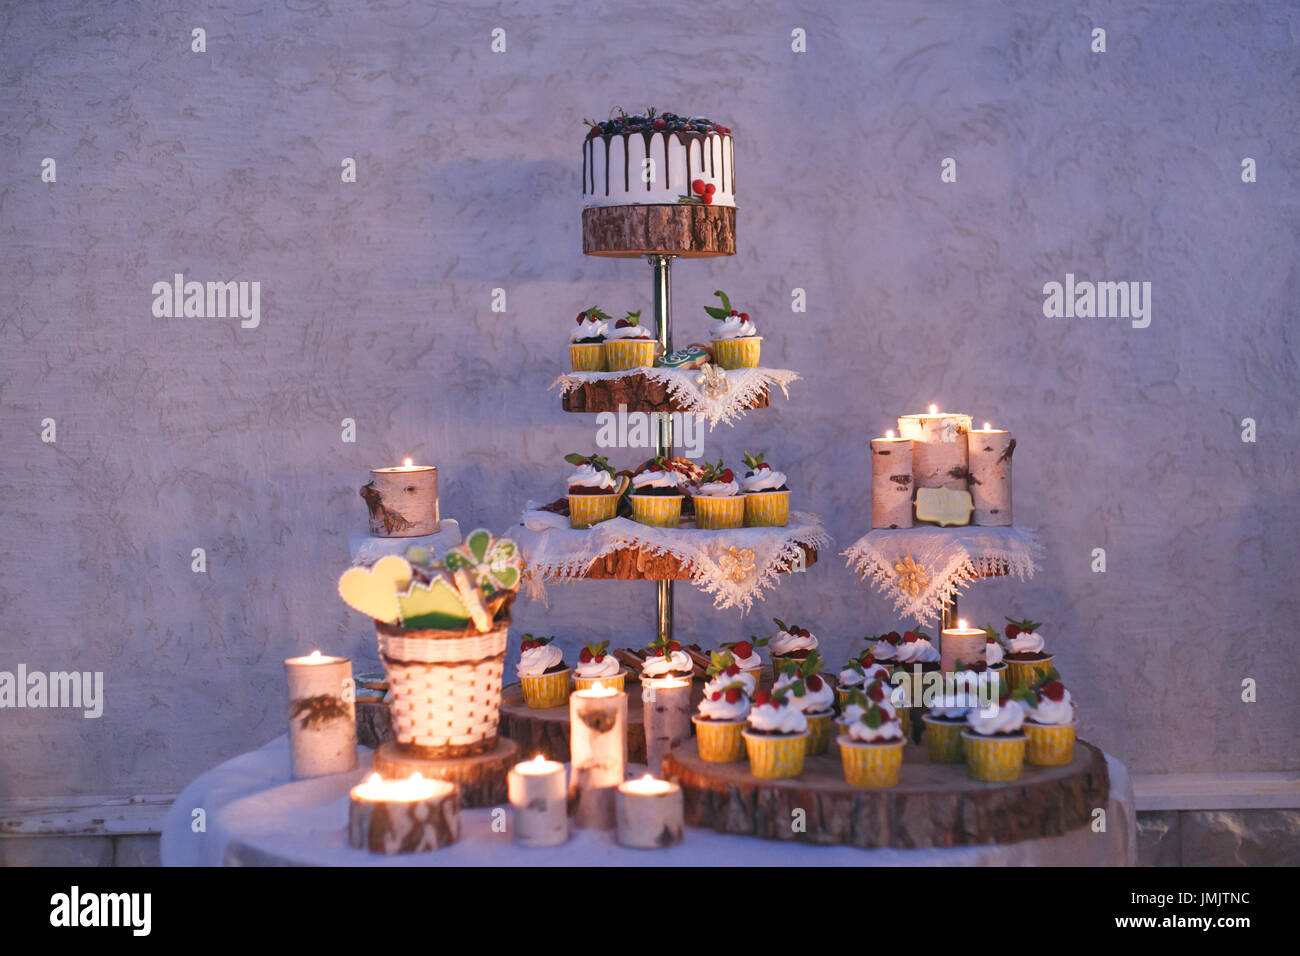 Wedding cake and cupcakes with candles on a shelf made of wood - Stock Image